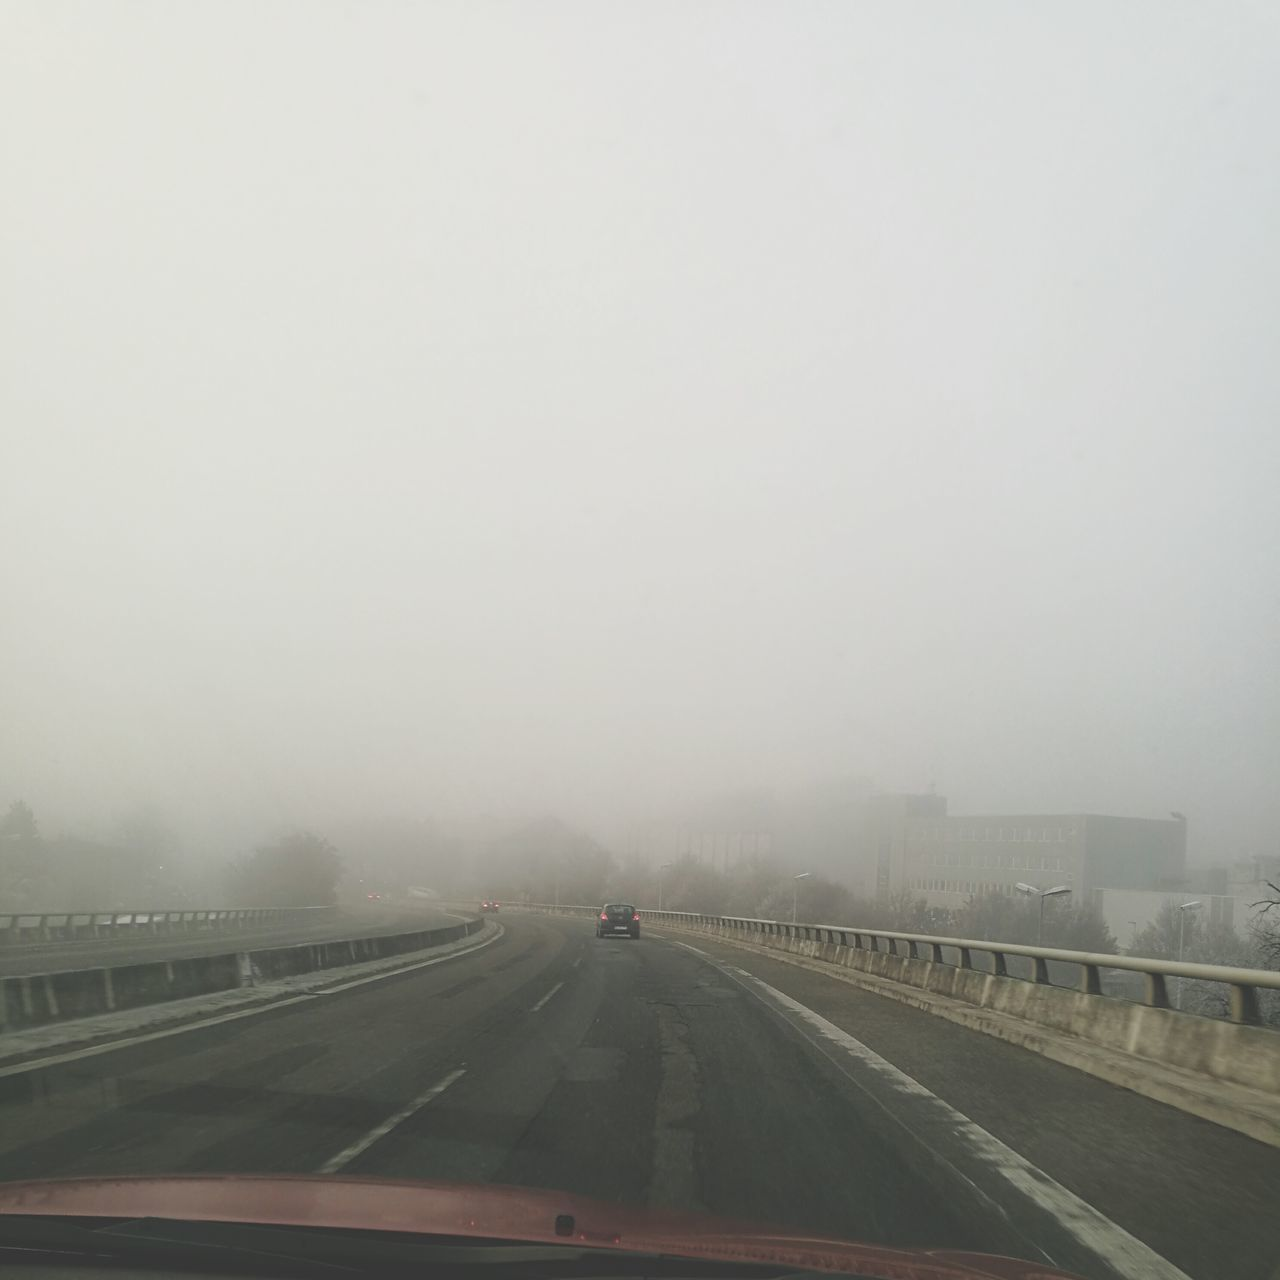 Transportation Fog Road Weather Rain Highway Car No PeopleAirport Runway Sky Outdoors Whiteroads MerryChristmas Day Nature Kristine19 Family